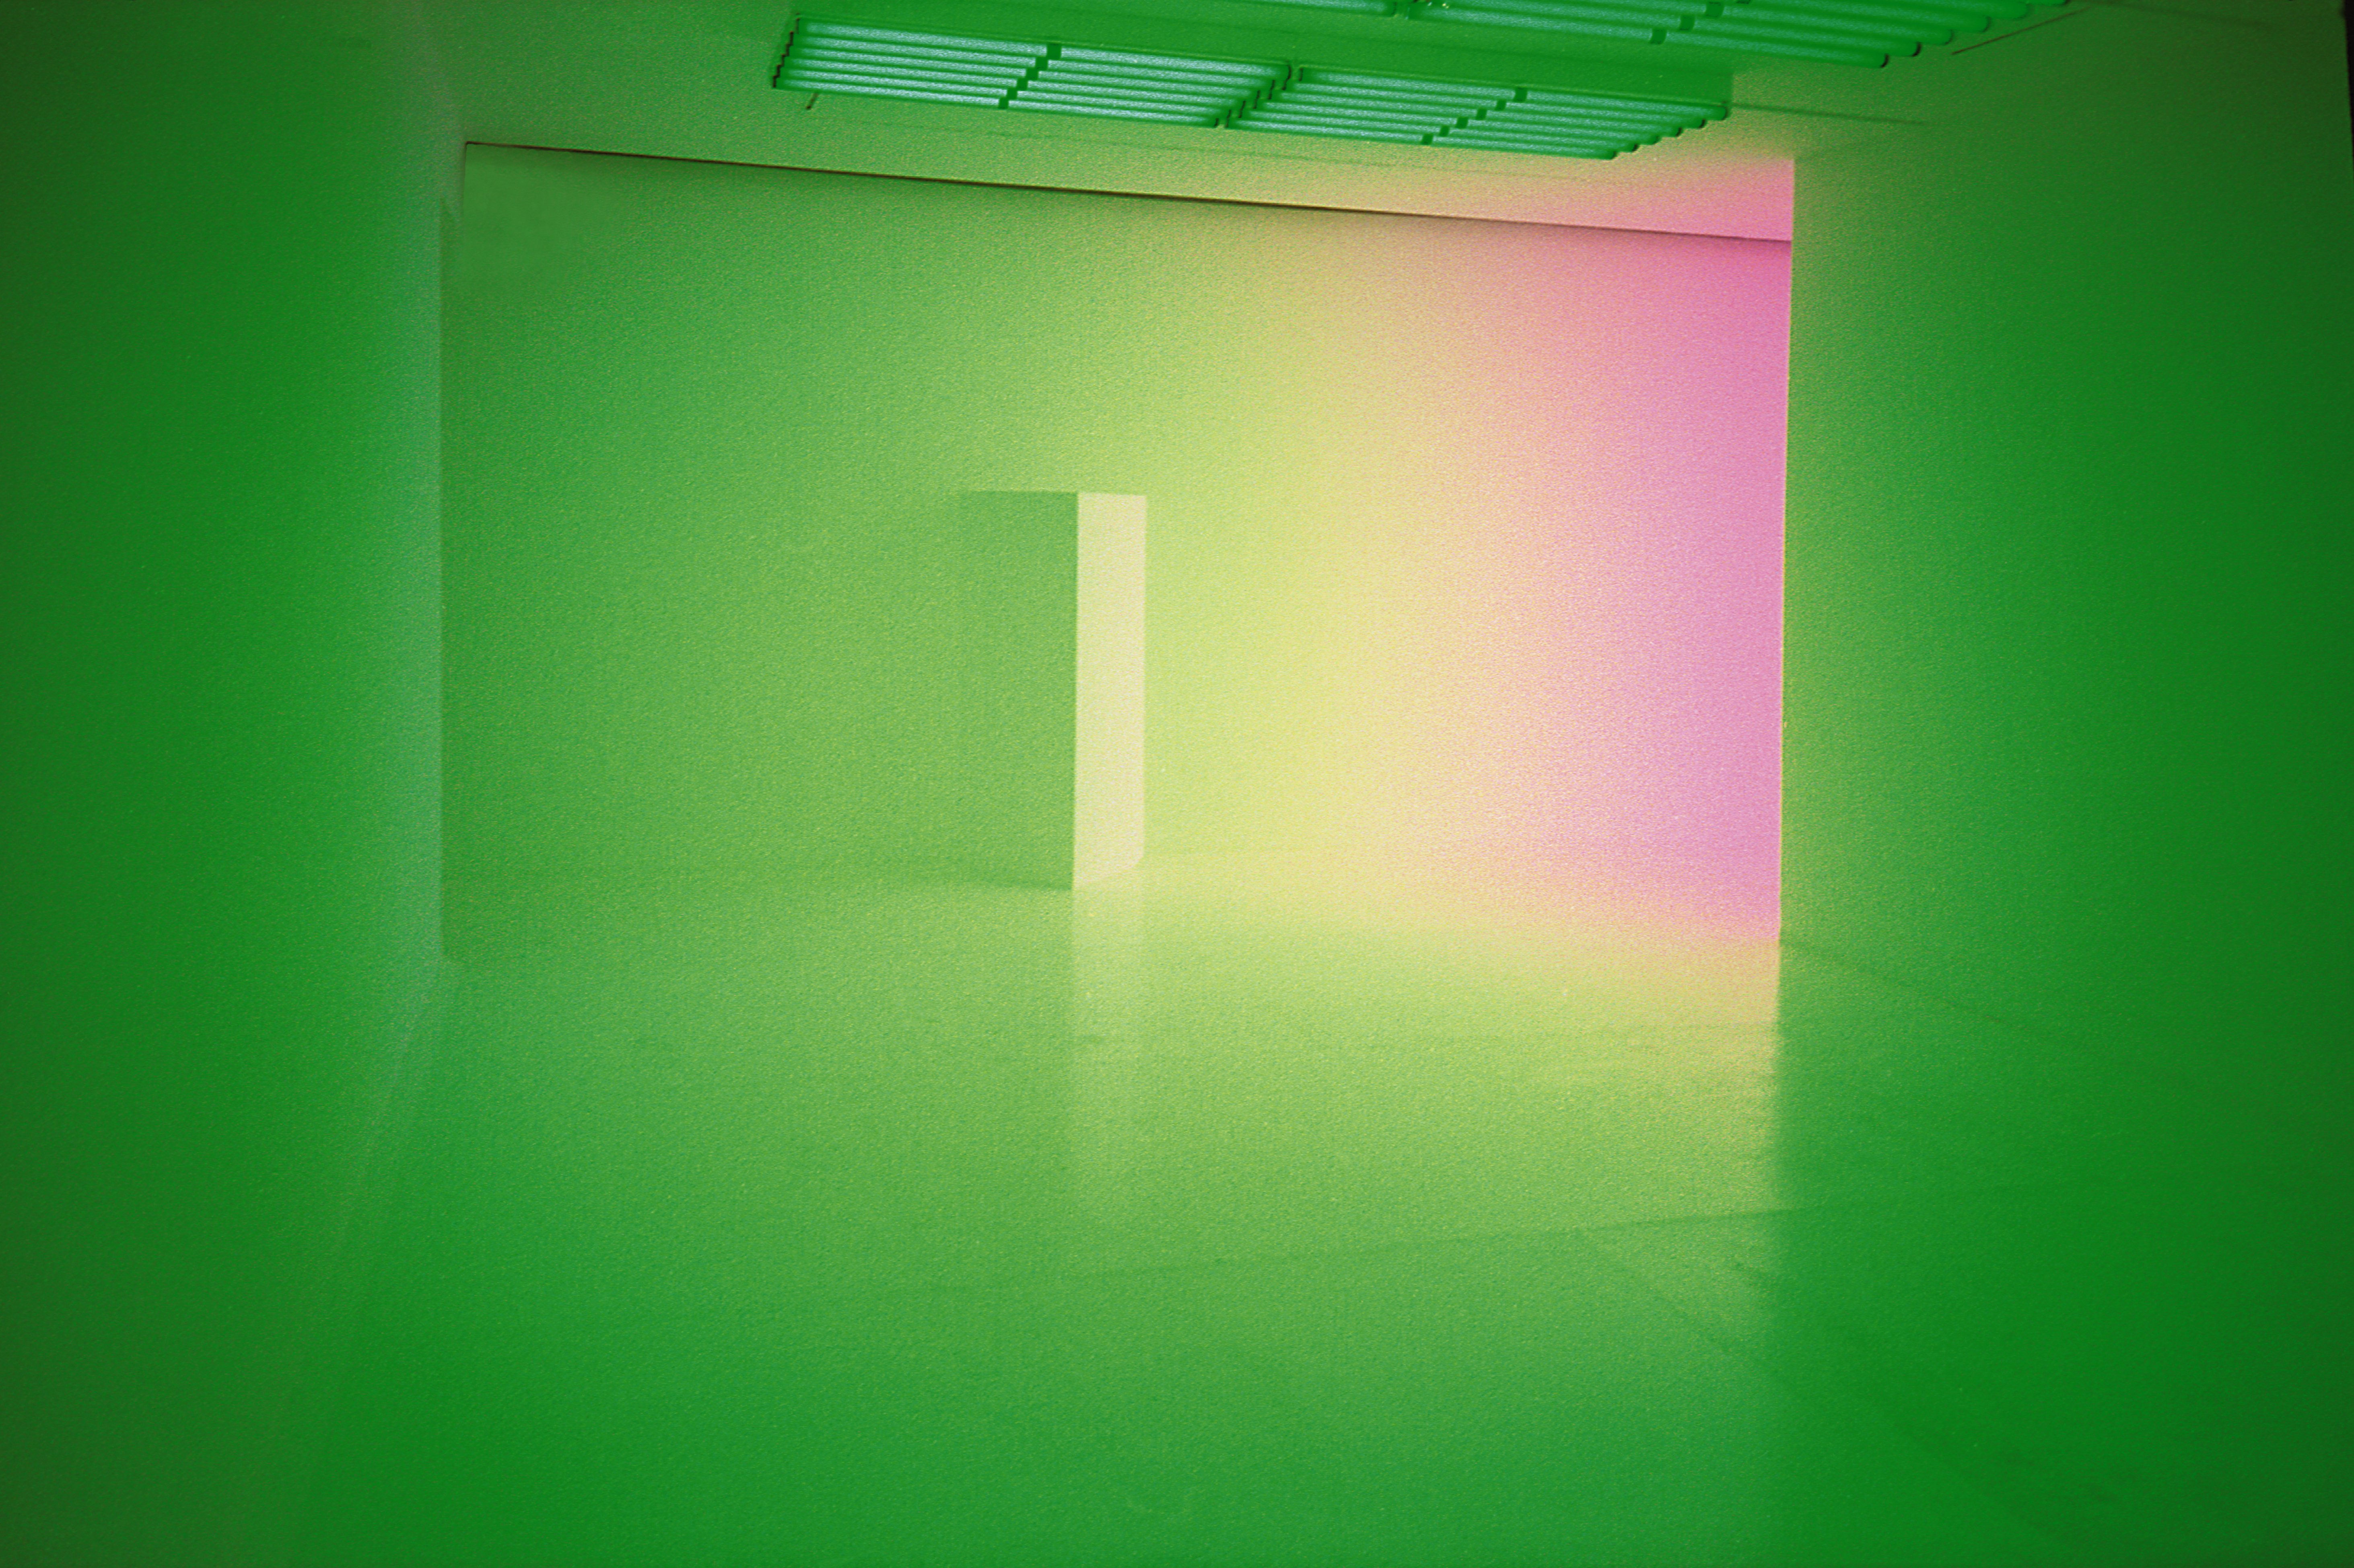 Image of a room with colourful lights in green and pink